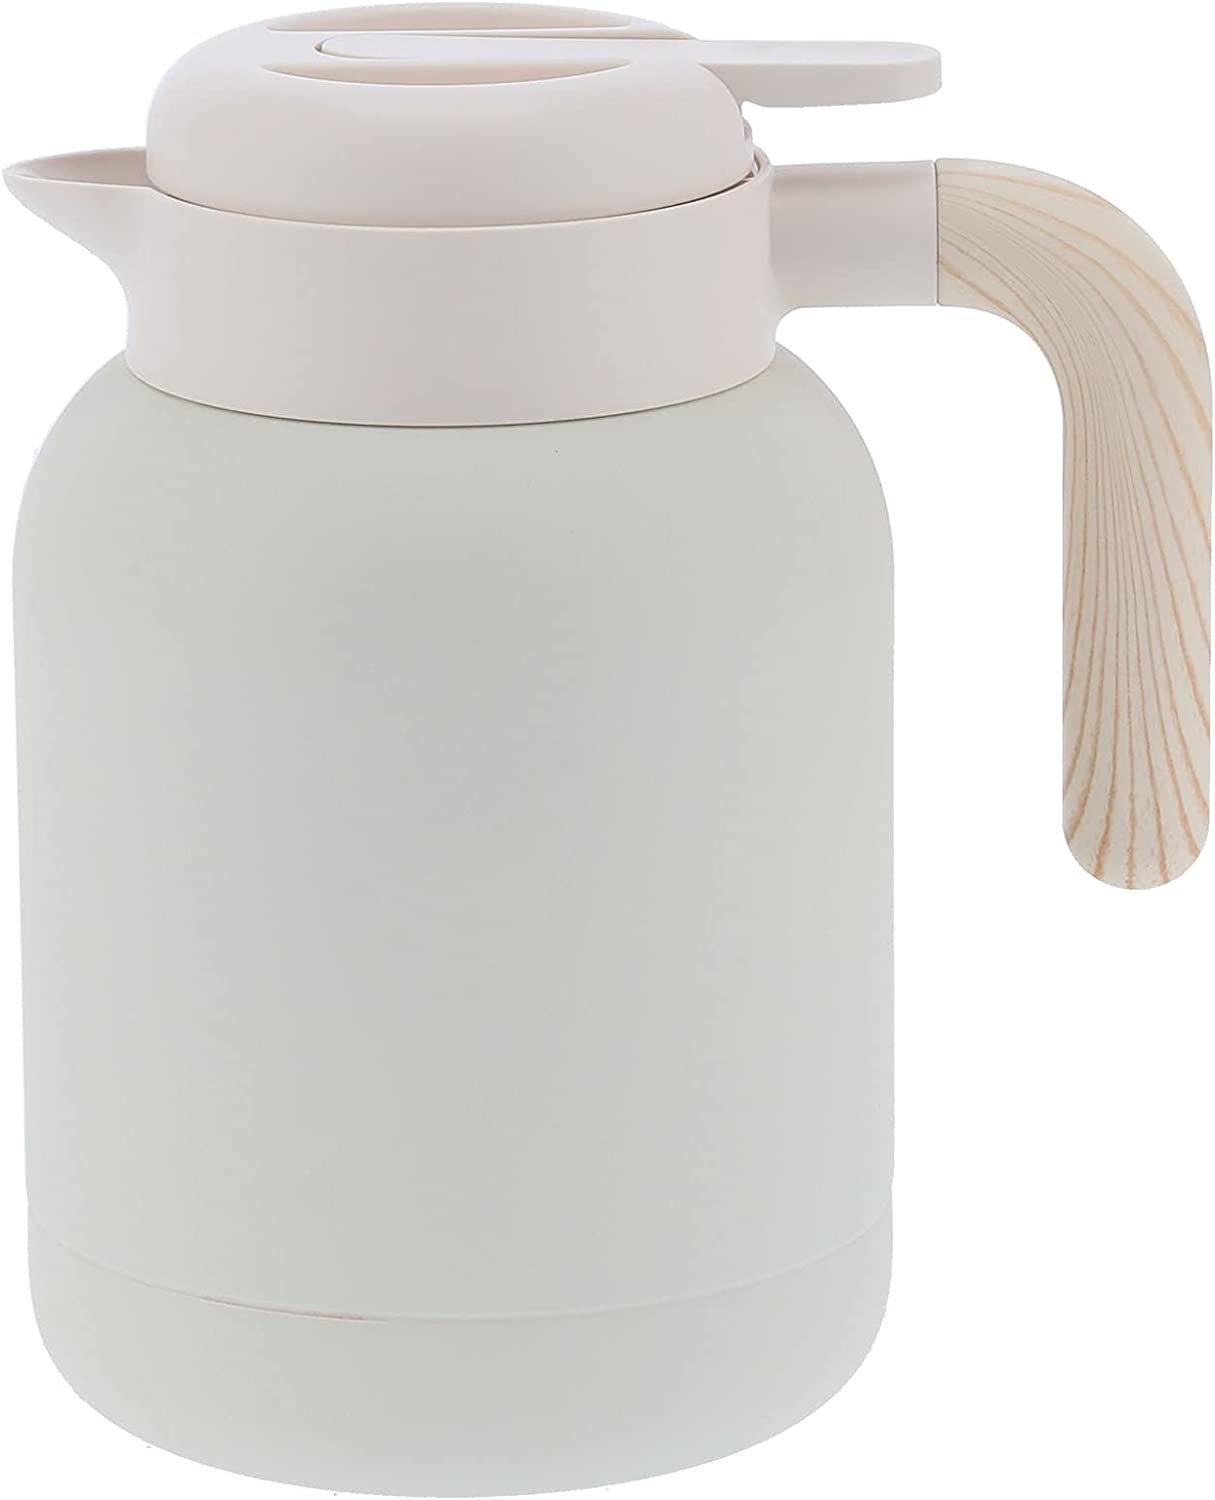 Thermal Coffee Denver List price Mall Carafe 1500ml Steel Jug Insul Stainless